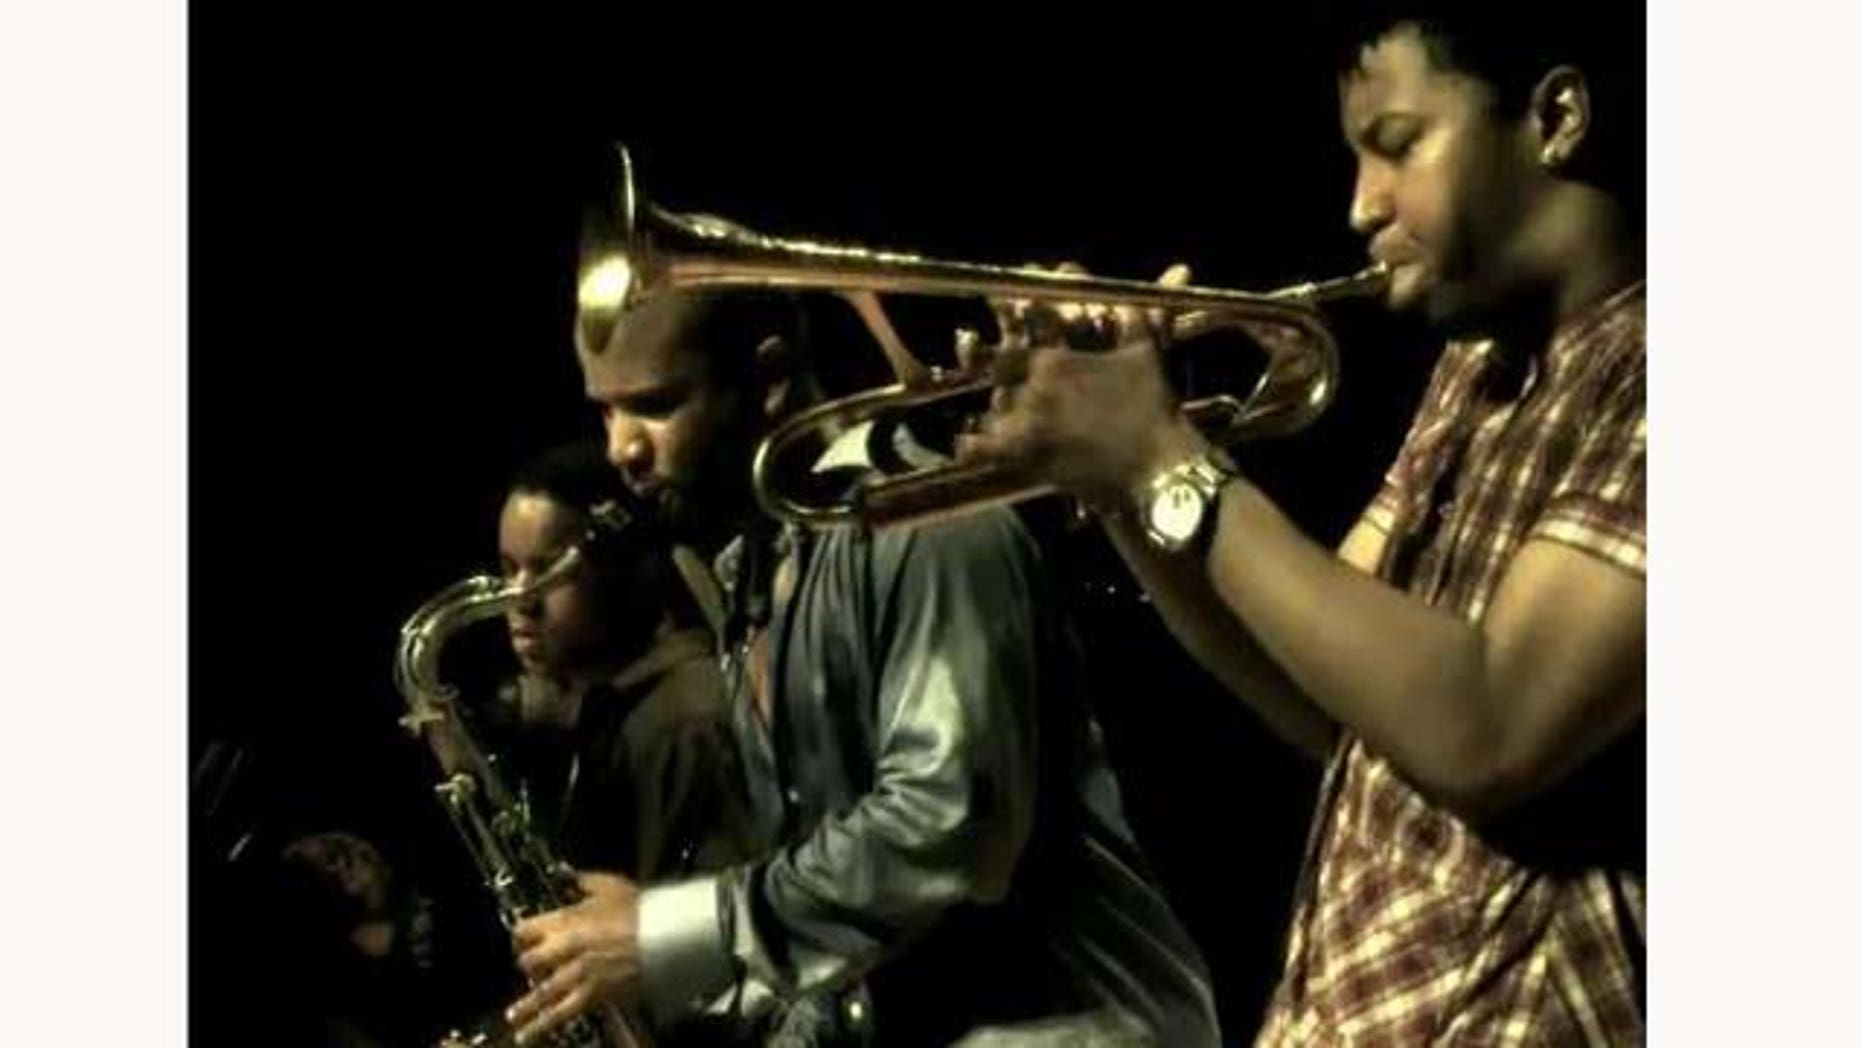 June 21, 2011: Musicians David Sánchez (middle) plays with his bandmates Christian Scott (R) and Stefon Harris (L).